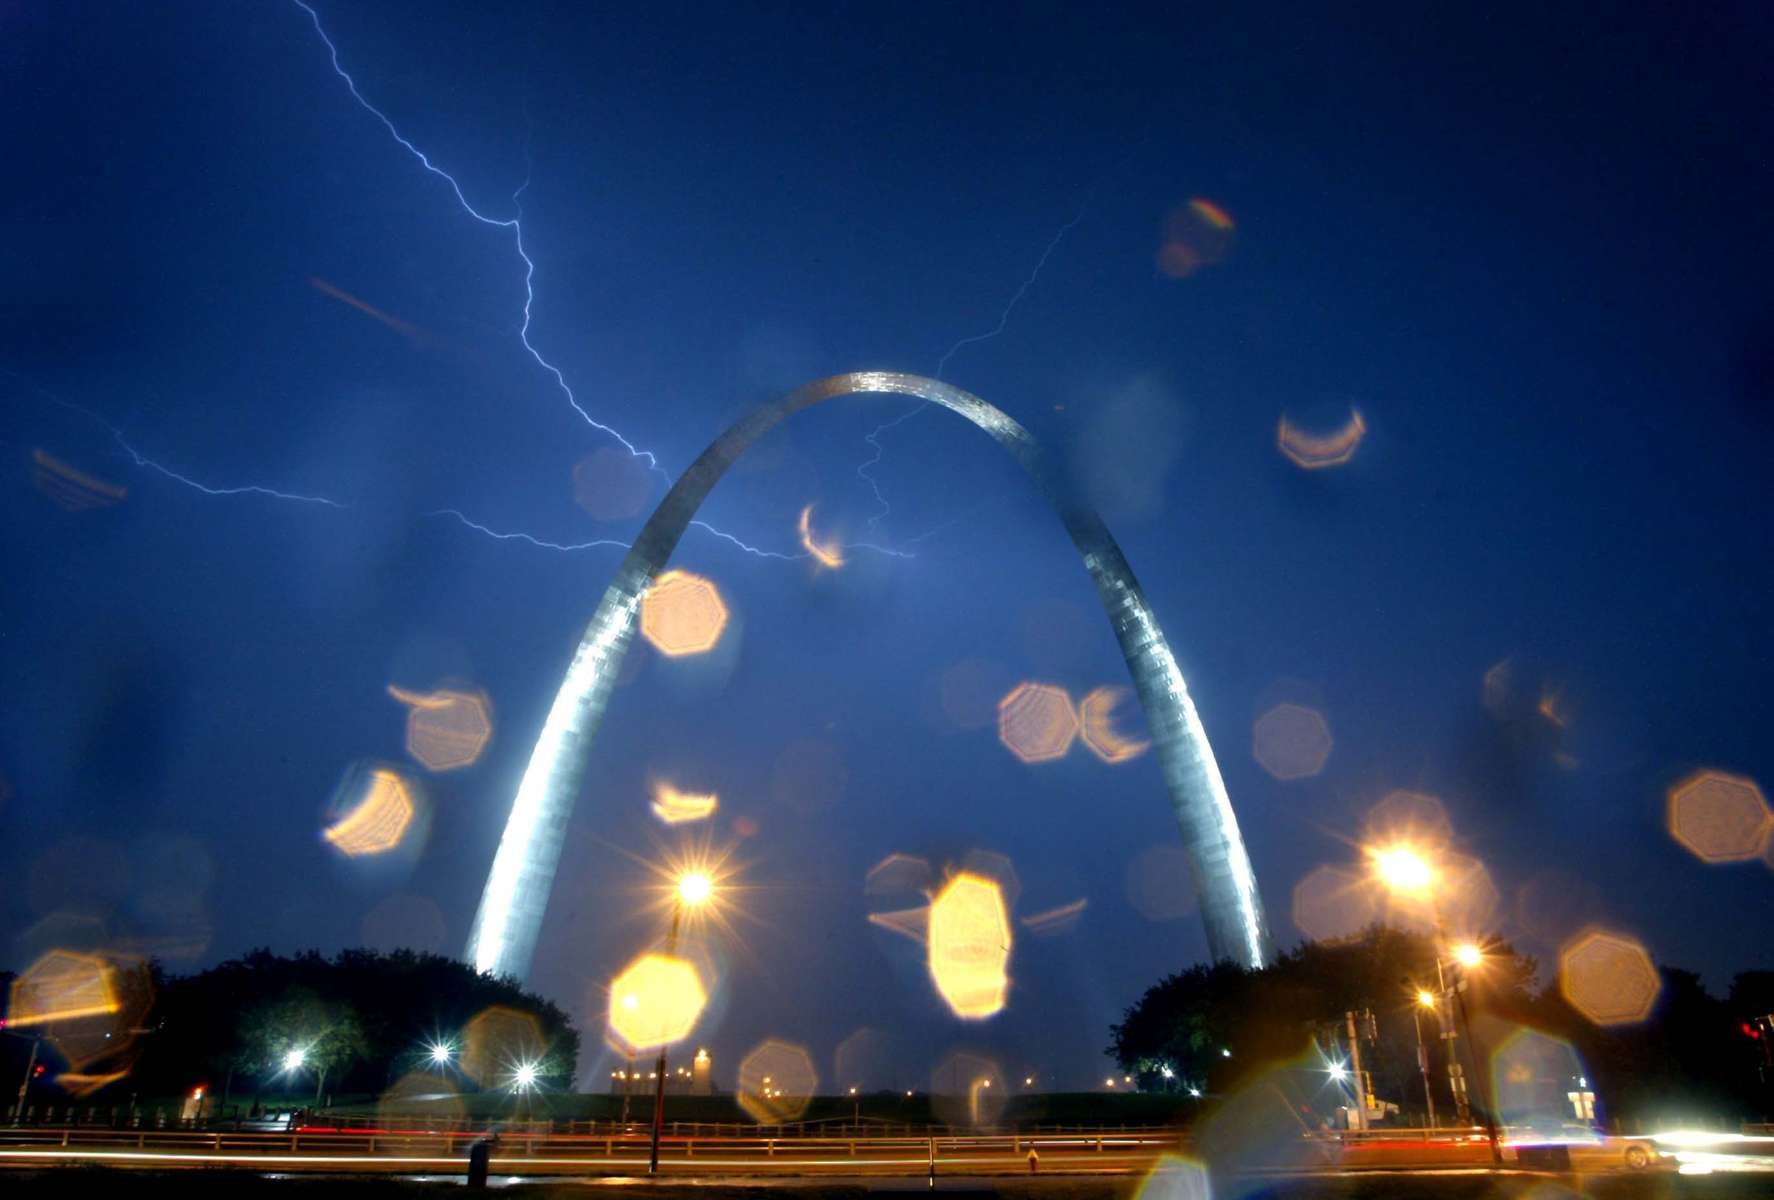 Lightning streaks across the sky above the Gateway Memorial Arch in downtown St. Louis on Saturday.